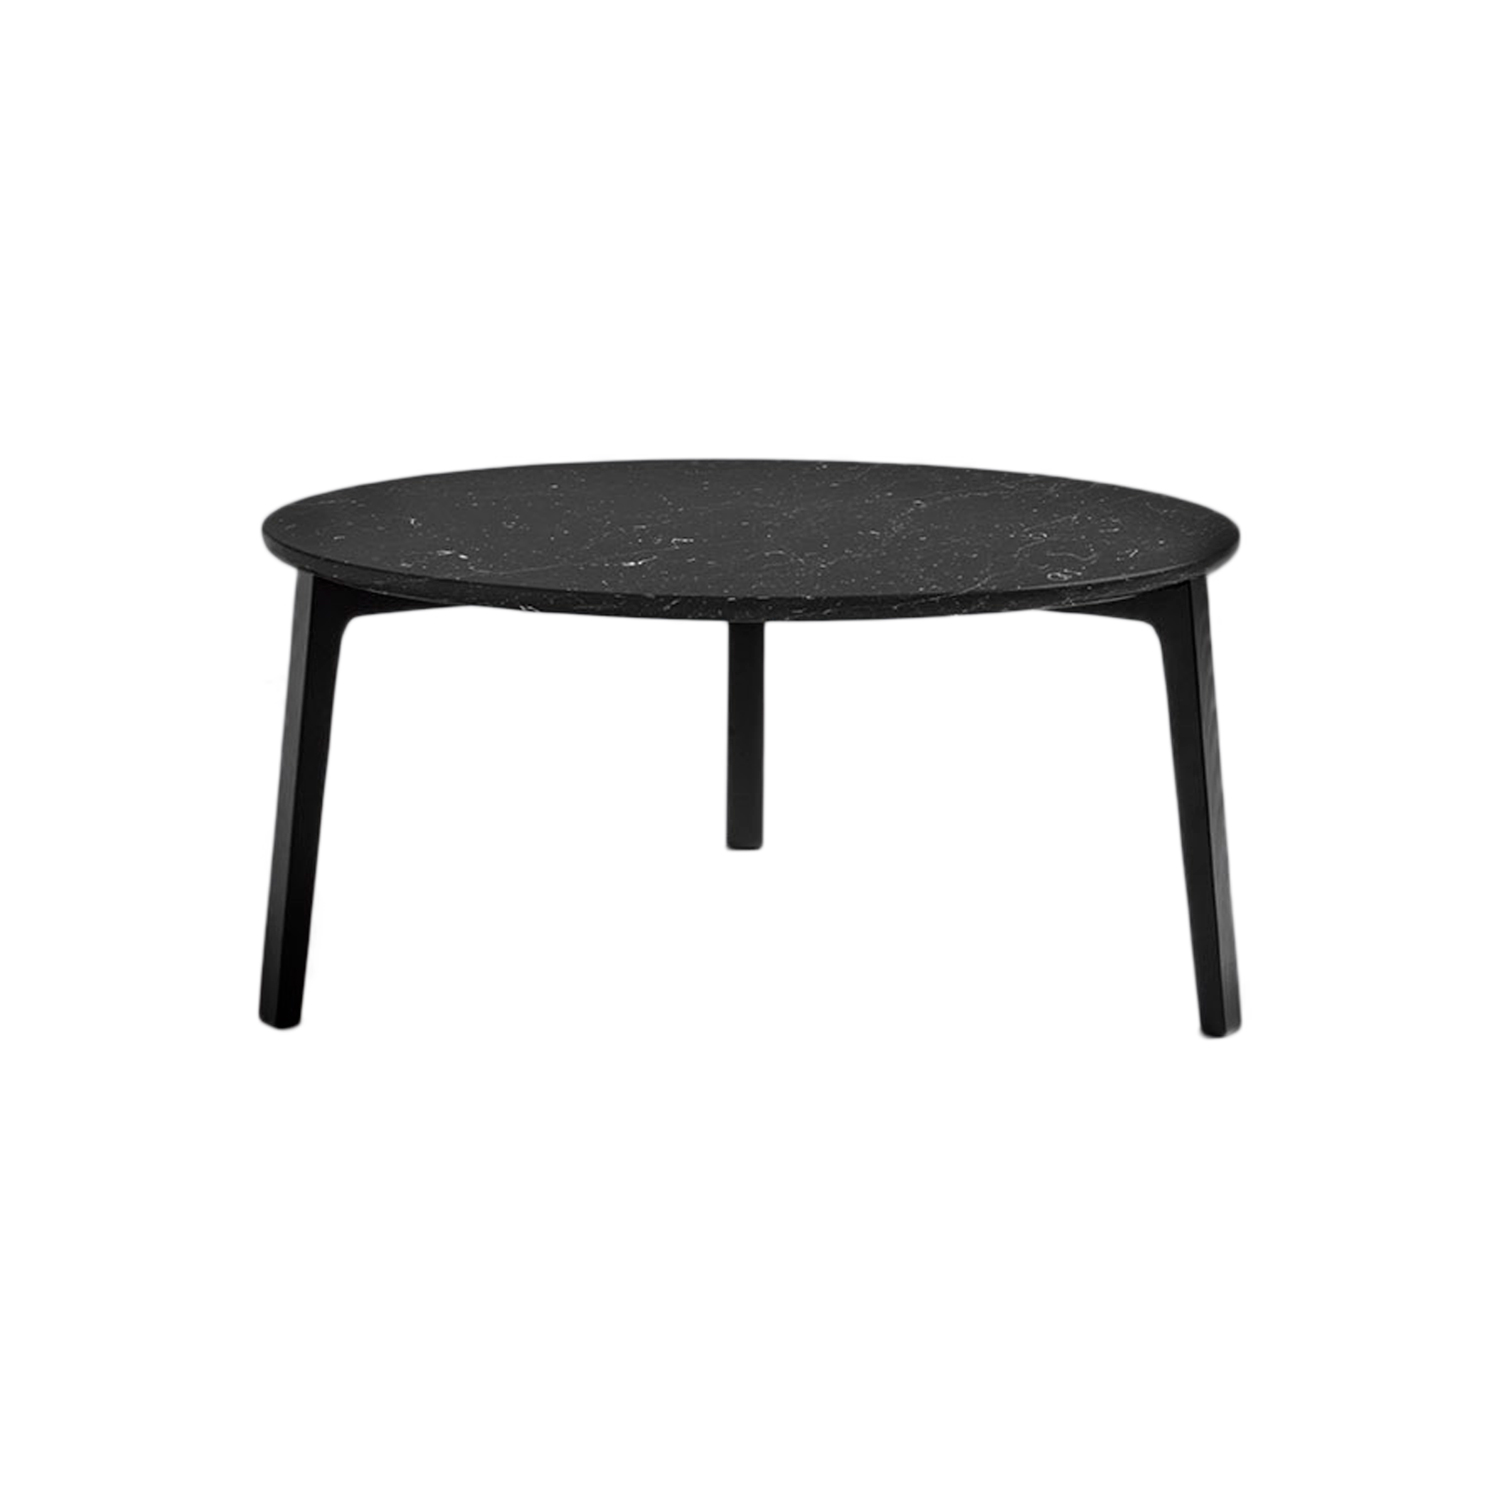 Cot Coffee Table - The Cot tables have been created to interact with the Riquadra seating collection, from which they inherit the cross-section of the leg and its relationship with the top. Envisioned in two sizes, 60 cm and 80 cm, they have tops in marble or lacquered ash wood. The circular tops, with rounded lower borders, are fitted to the particular cross-section of the legs in solid ash wood. The structure is enhanced and reinforced by the characteristic central three-way joint. A range of materials, finishes and sizes are available in a number of combinations.  | Matter of Stuff